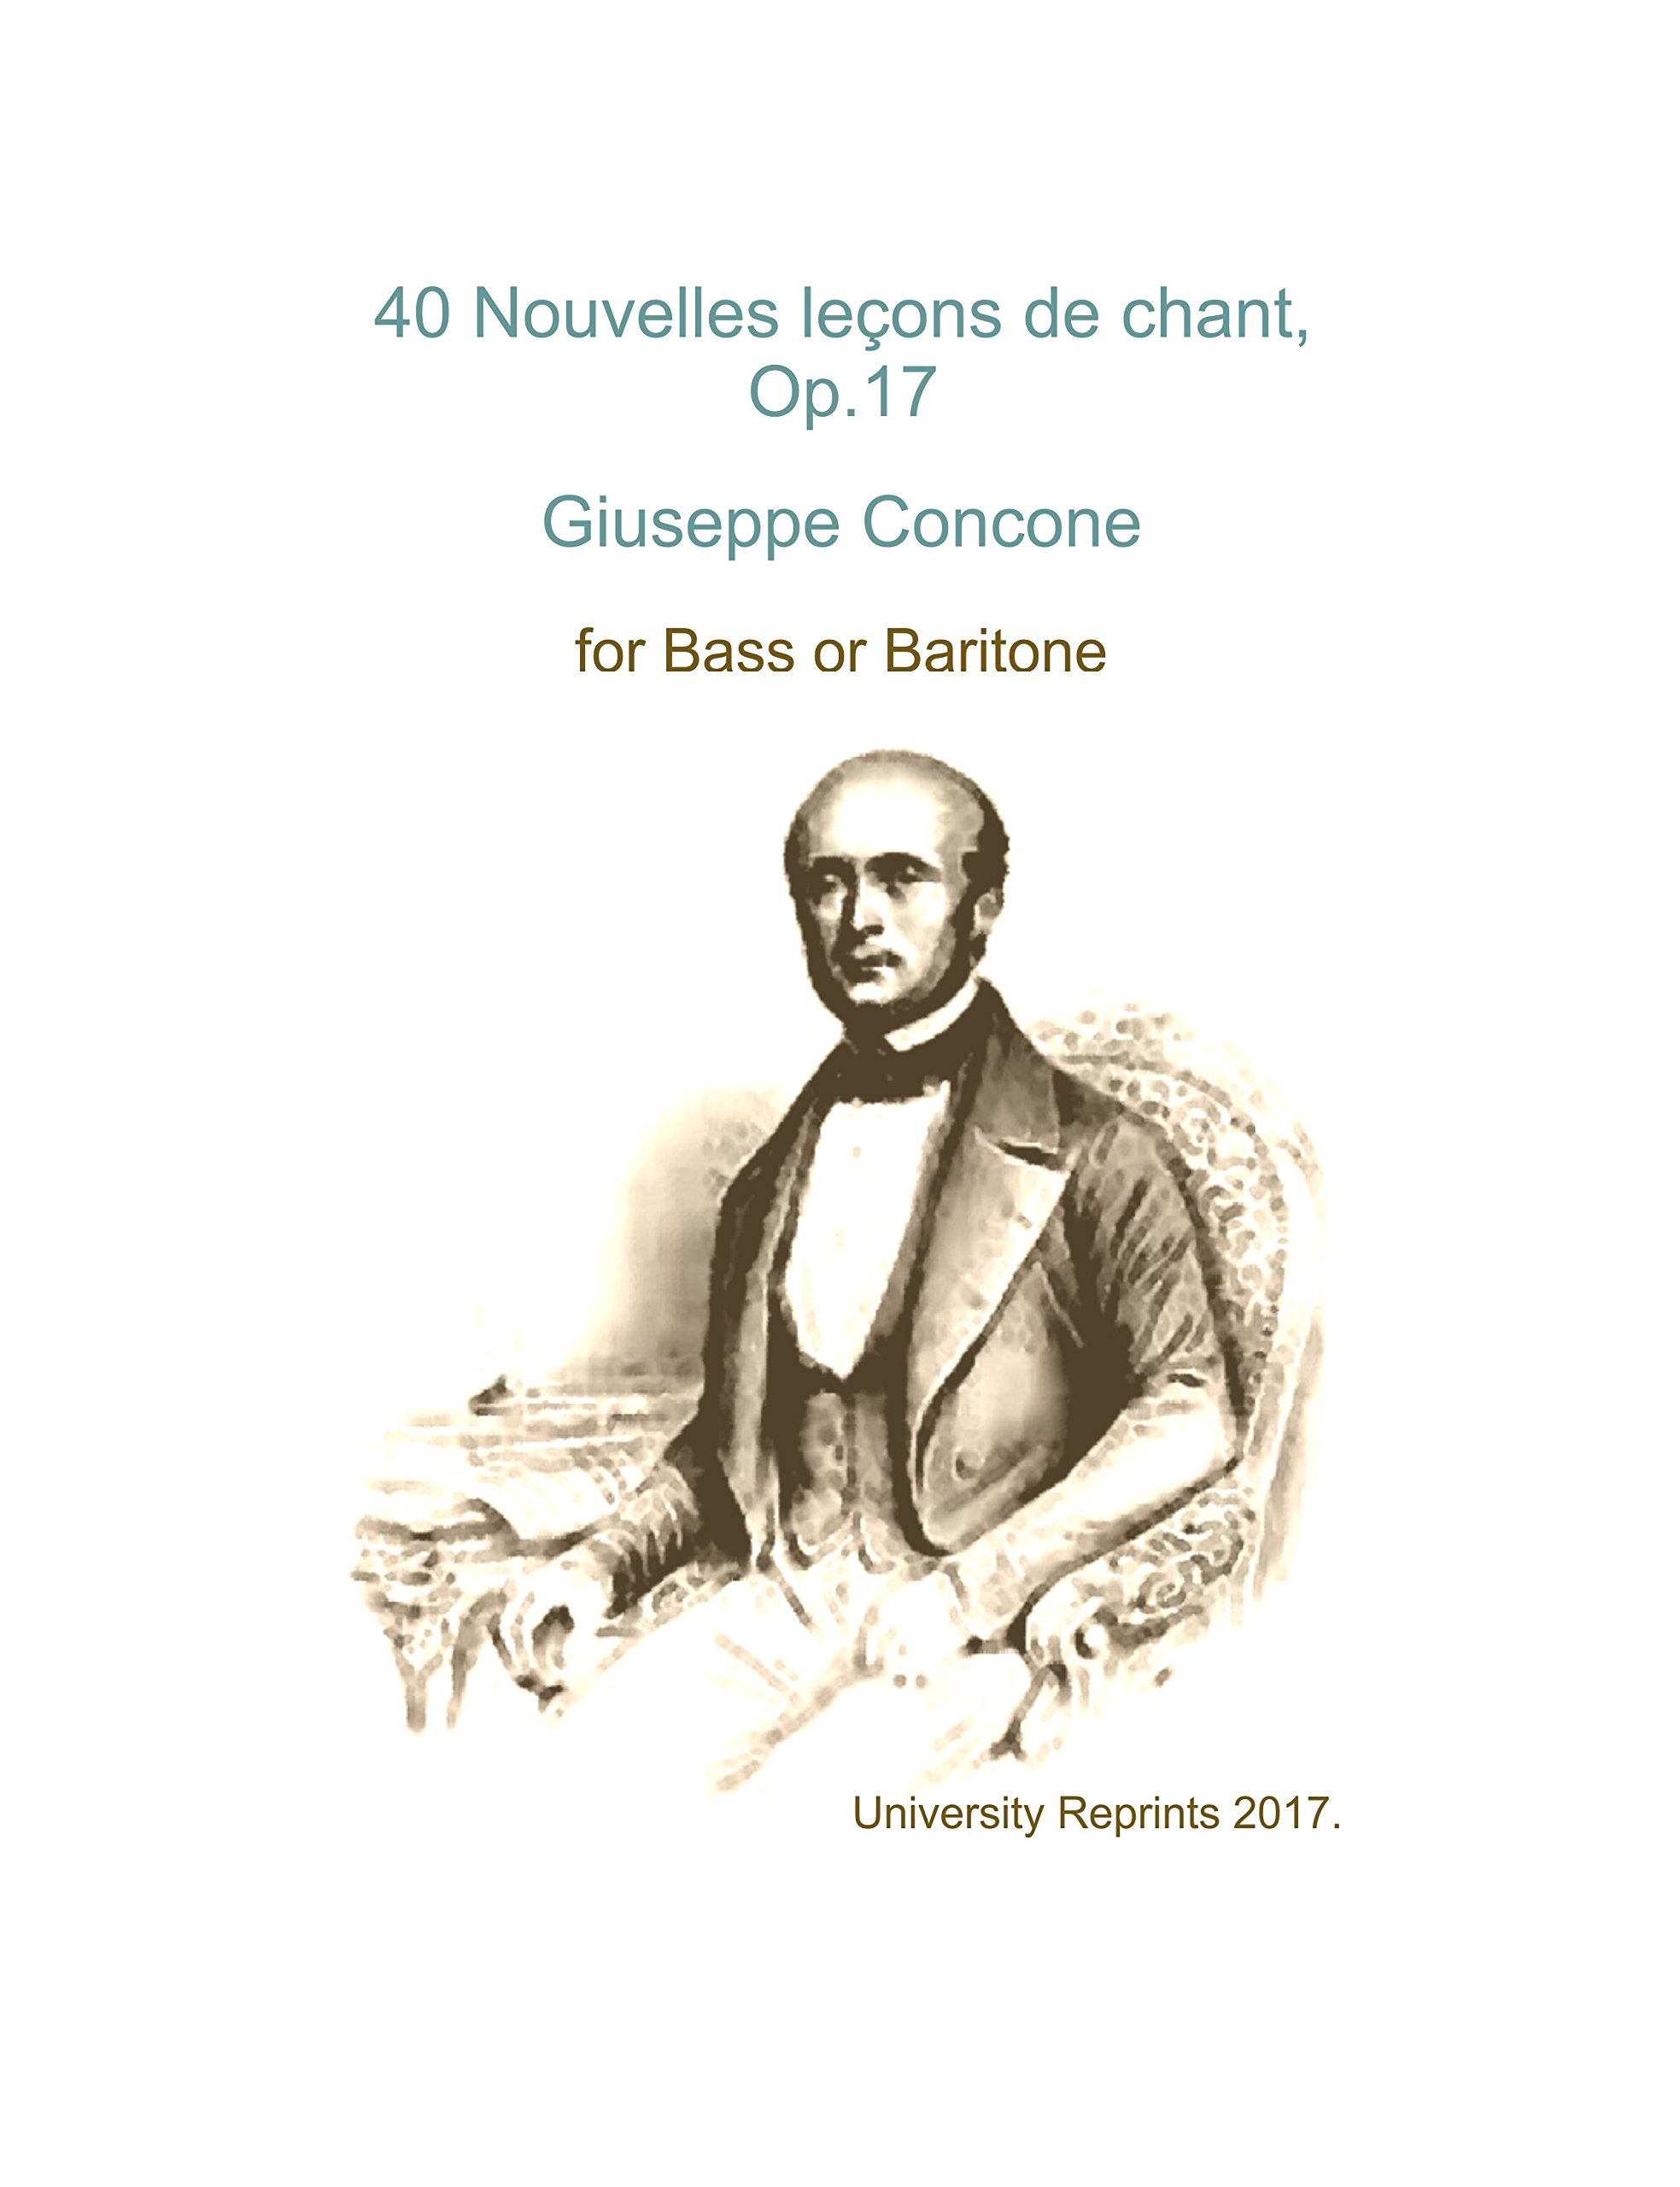 Read Online 40 Nouvelles lecons de chant, Op.17 by Giuseppe Concone for Bass or Baritone. [Beautifully Re-Imaged from Original for Greater Clarity. Student Loose Leaf Facsimile Edition. 2017] ebook